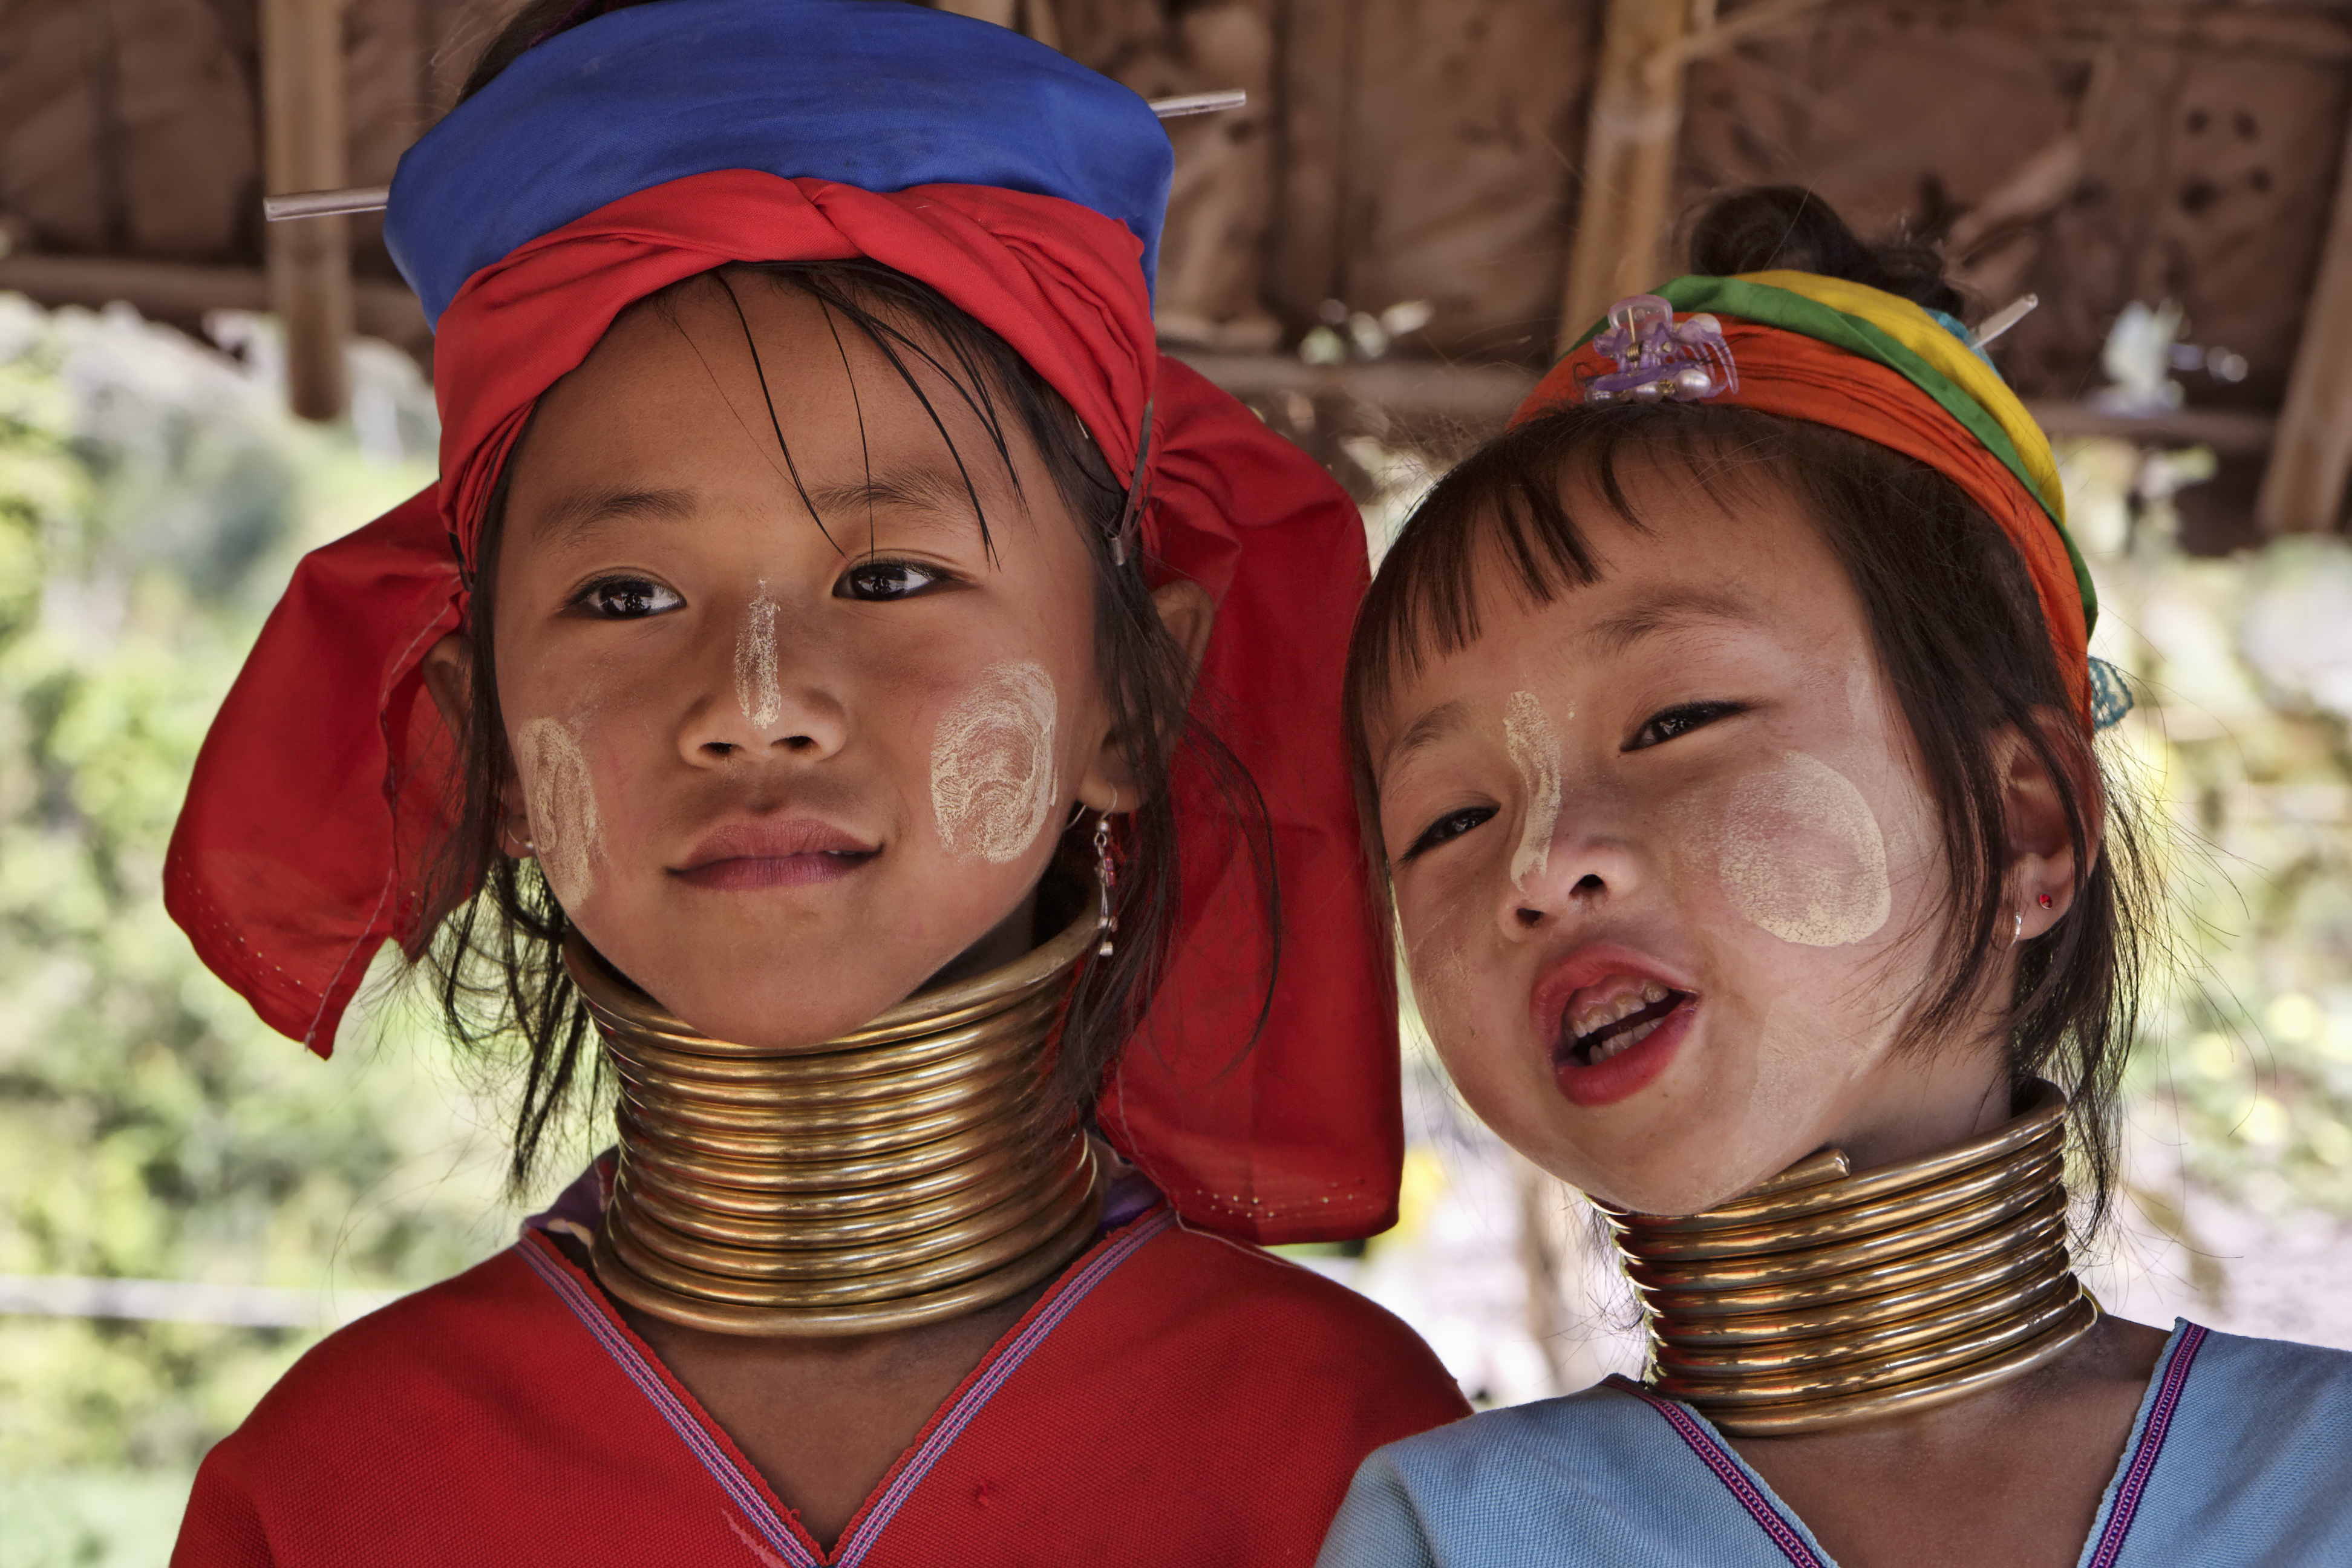 Thailand, Chiang Mai, Karen Long Neck hill tribe village (Kayan Lahwi), Long Neck young girls in traditional costumes. Women put brass rings on their neck when they are 5 or 6 years old and increase the number every year until their necks become longer as a symbol of beauty